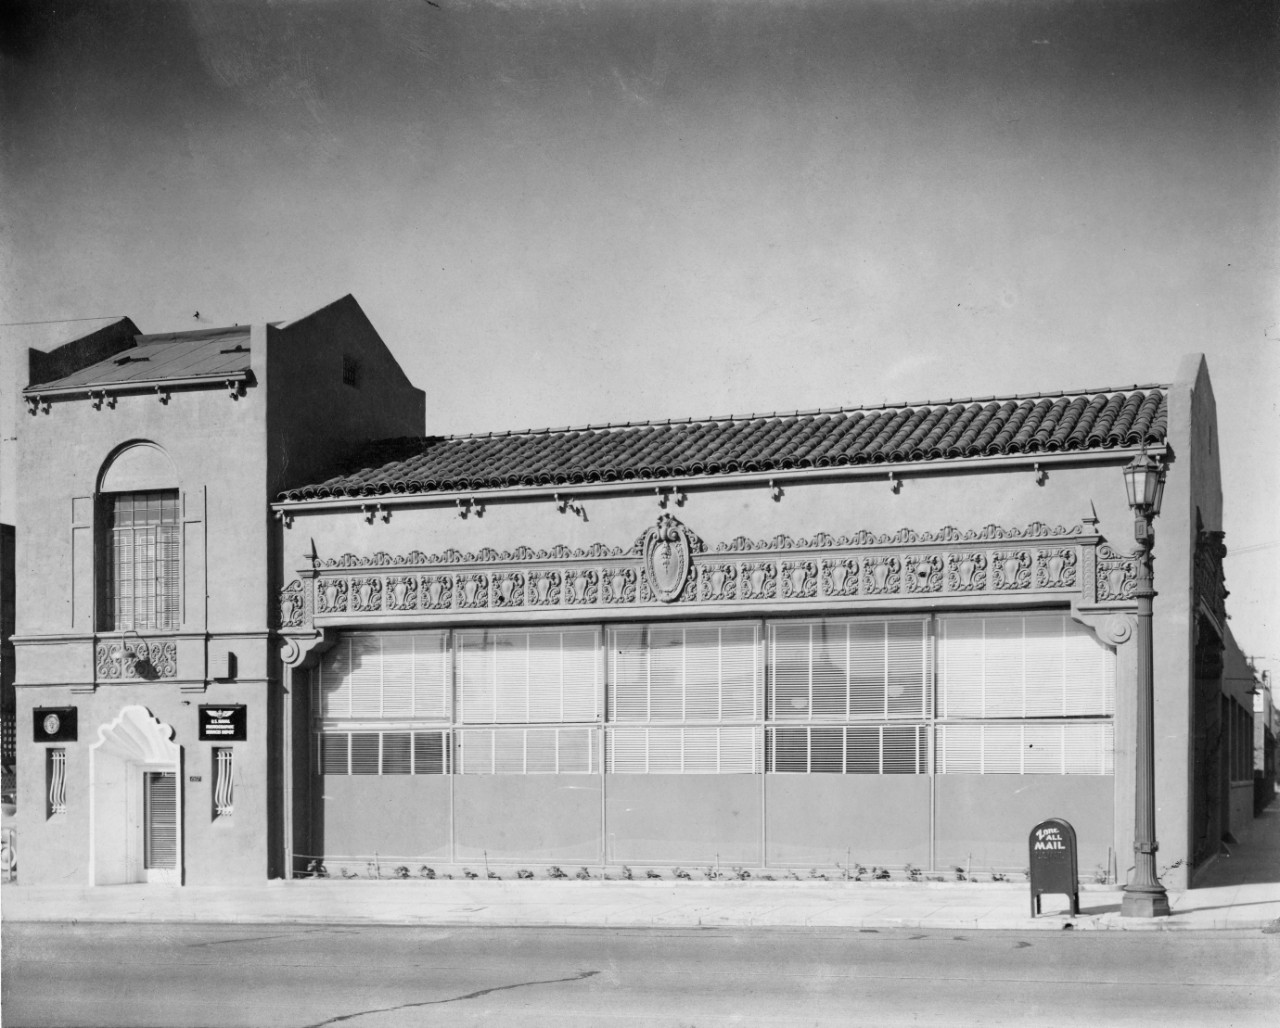 2015.22.003 U.S. Naval Photographic Services Depot, Hollywood, CA